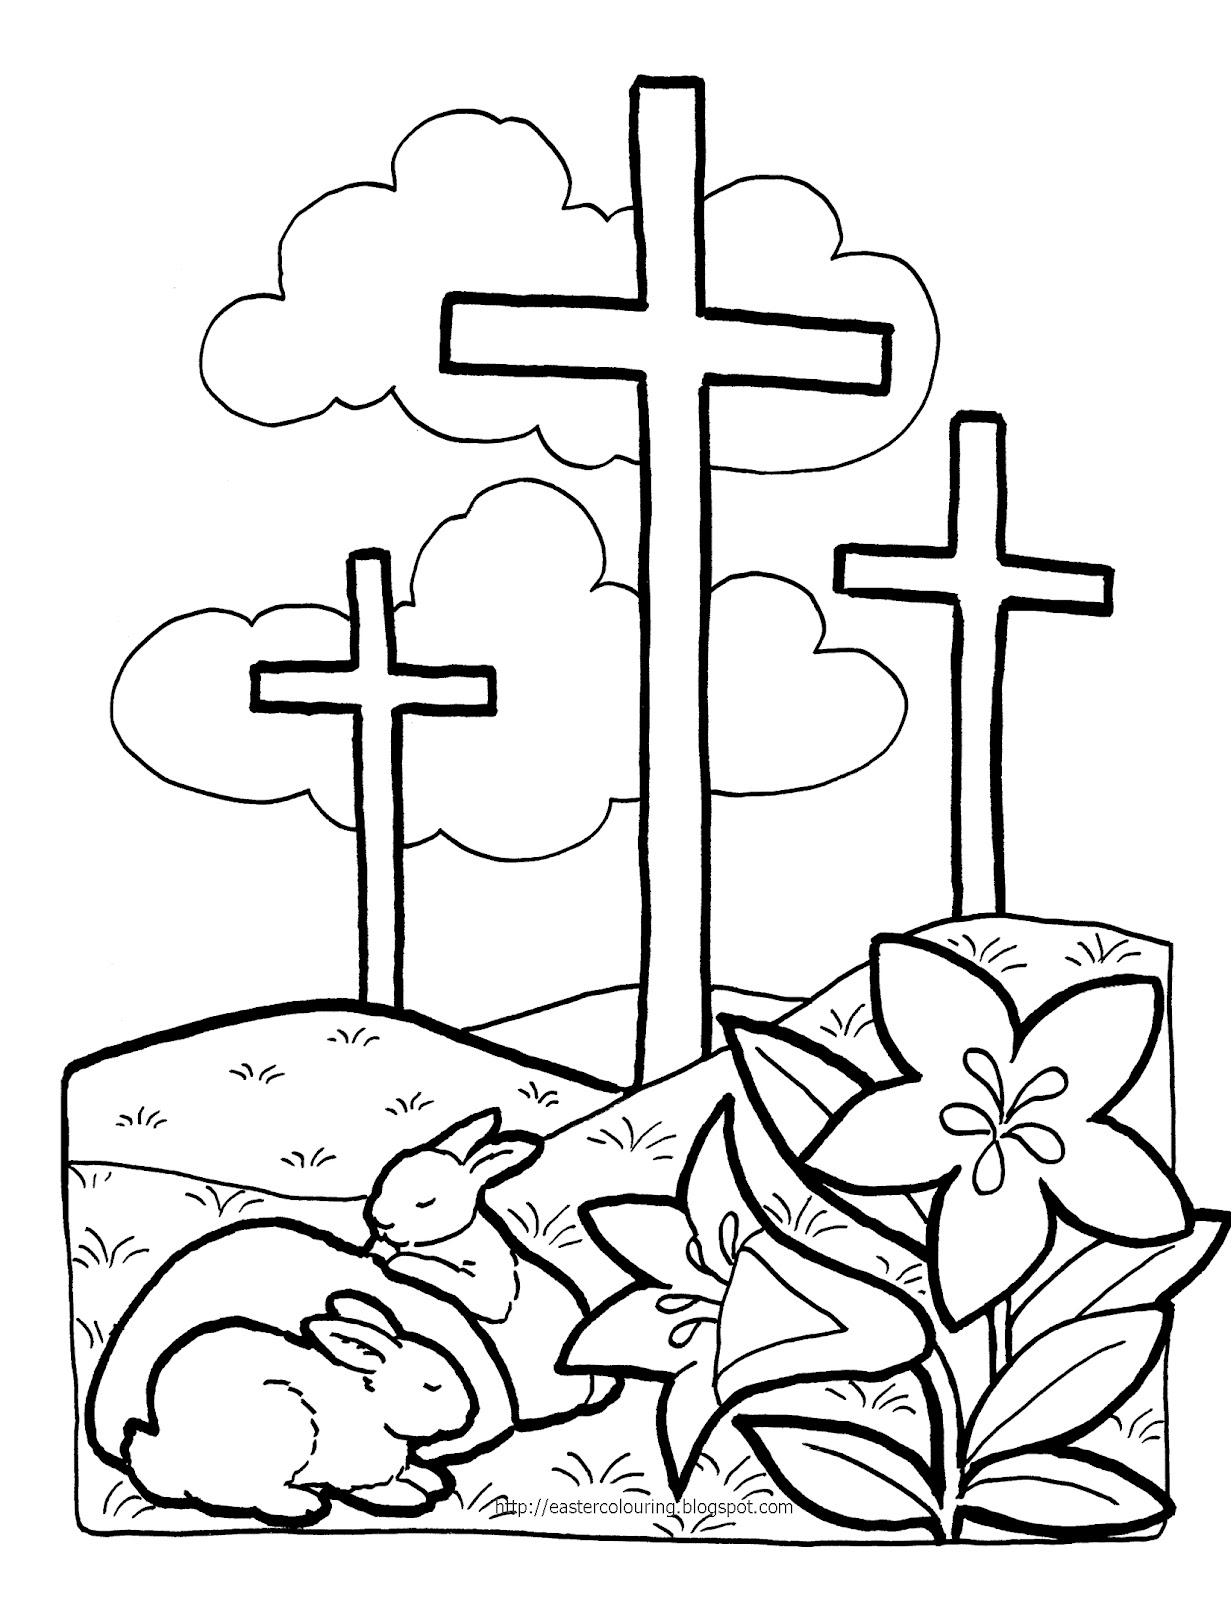 Easter Colouring Religious Easter Coloring Pages Religious Coloring Pages For